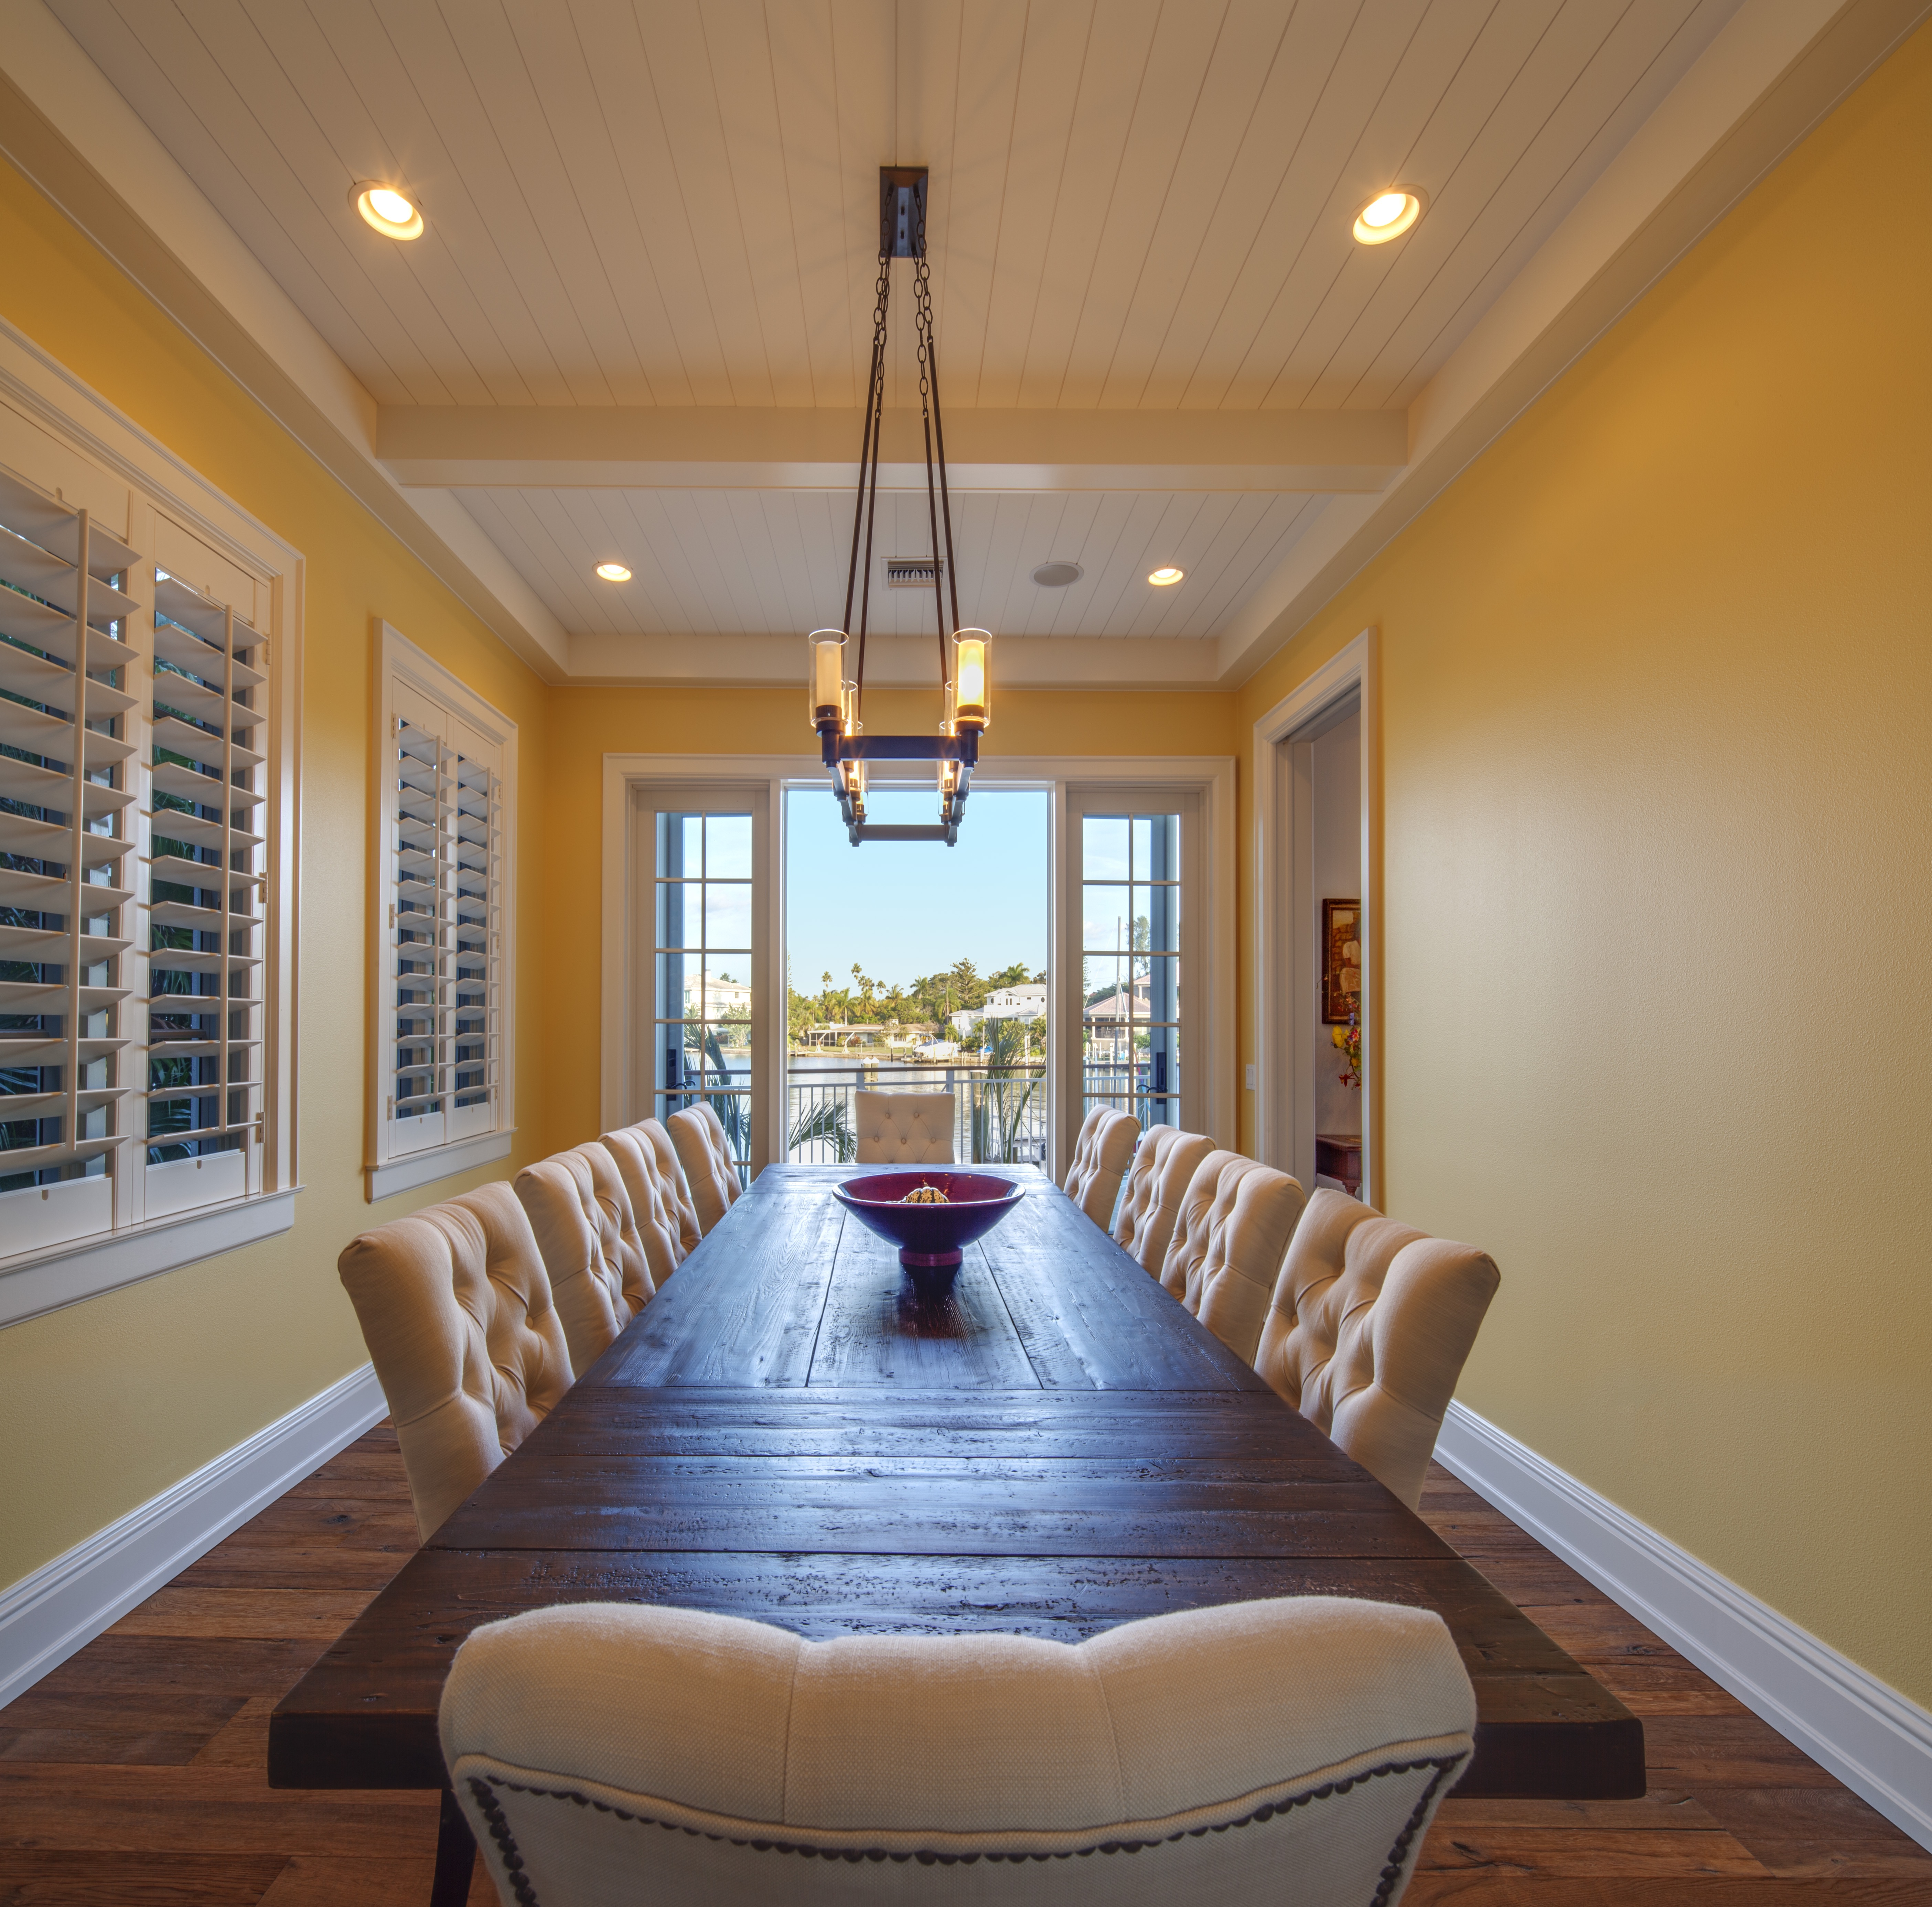 Yellow Dining Room Walls 30 Tropical House Design And Decor Ideas 17928 Exterior